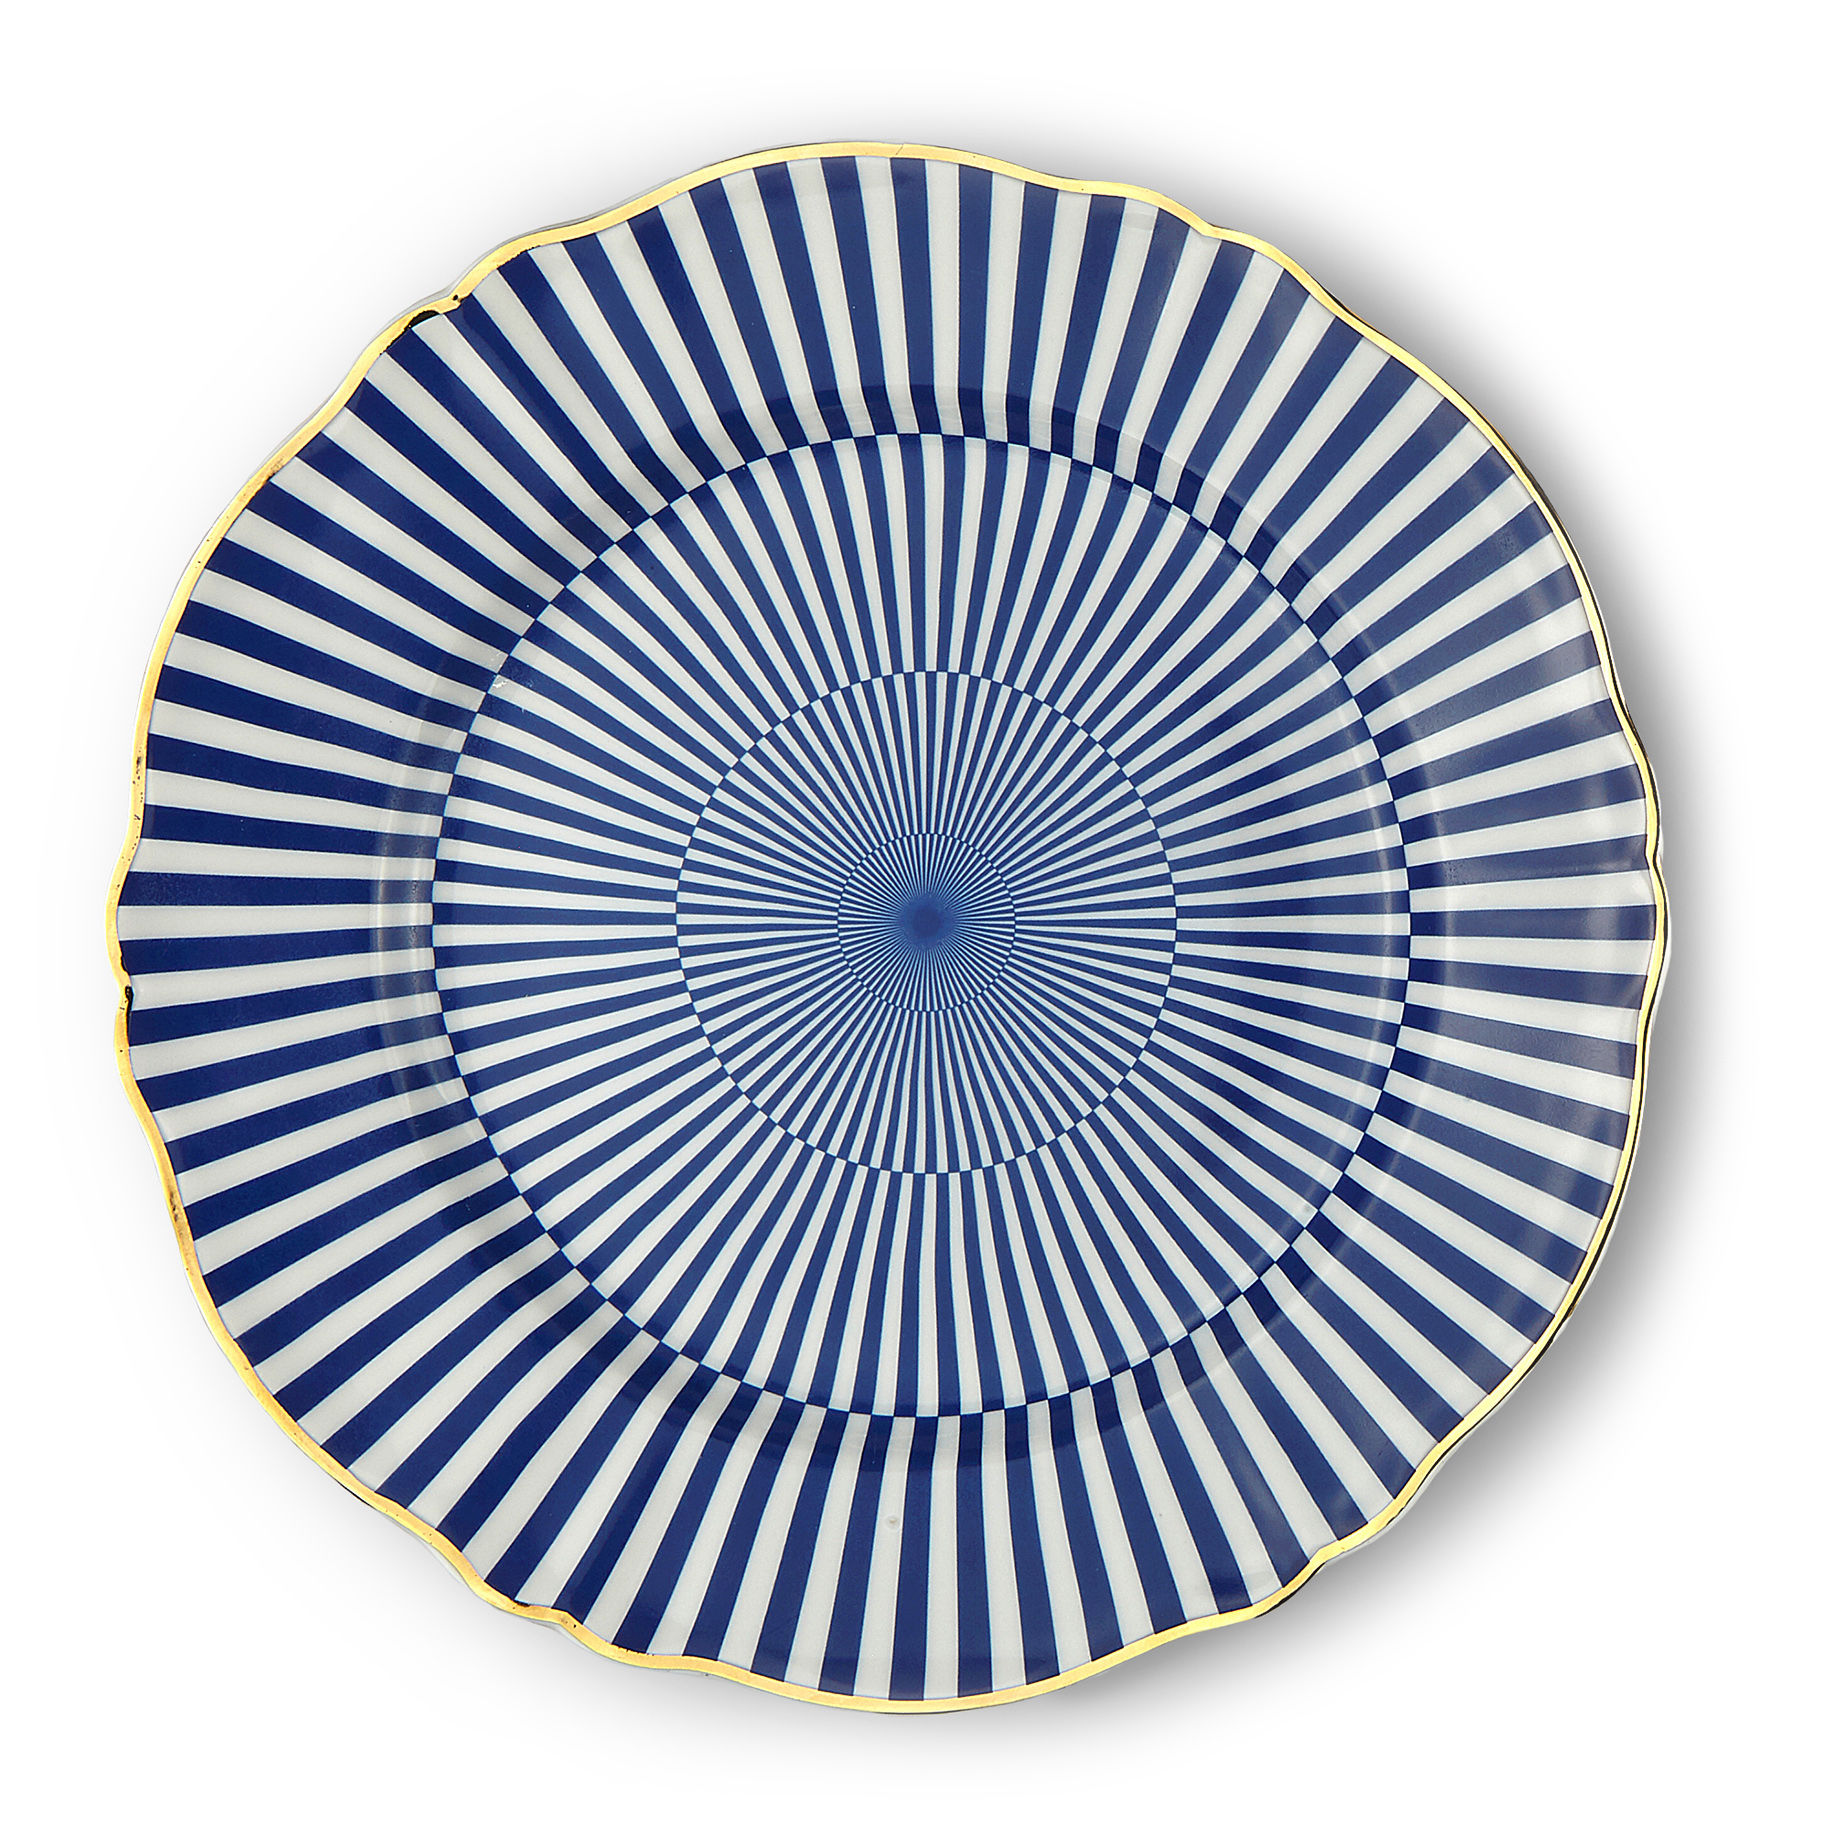 Tableware - Plates - Arcano Plate - / Ø 26.5 cm by Bitossi Home - Geometry - China